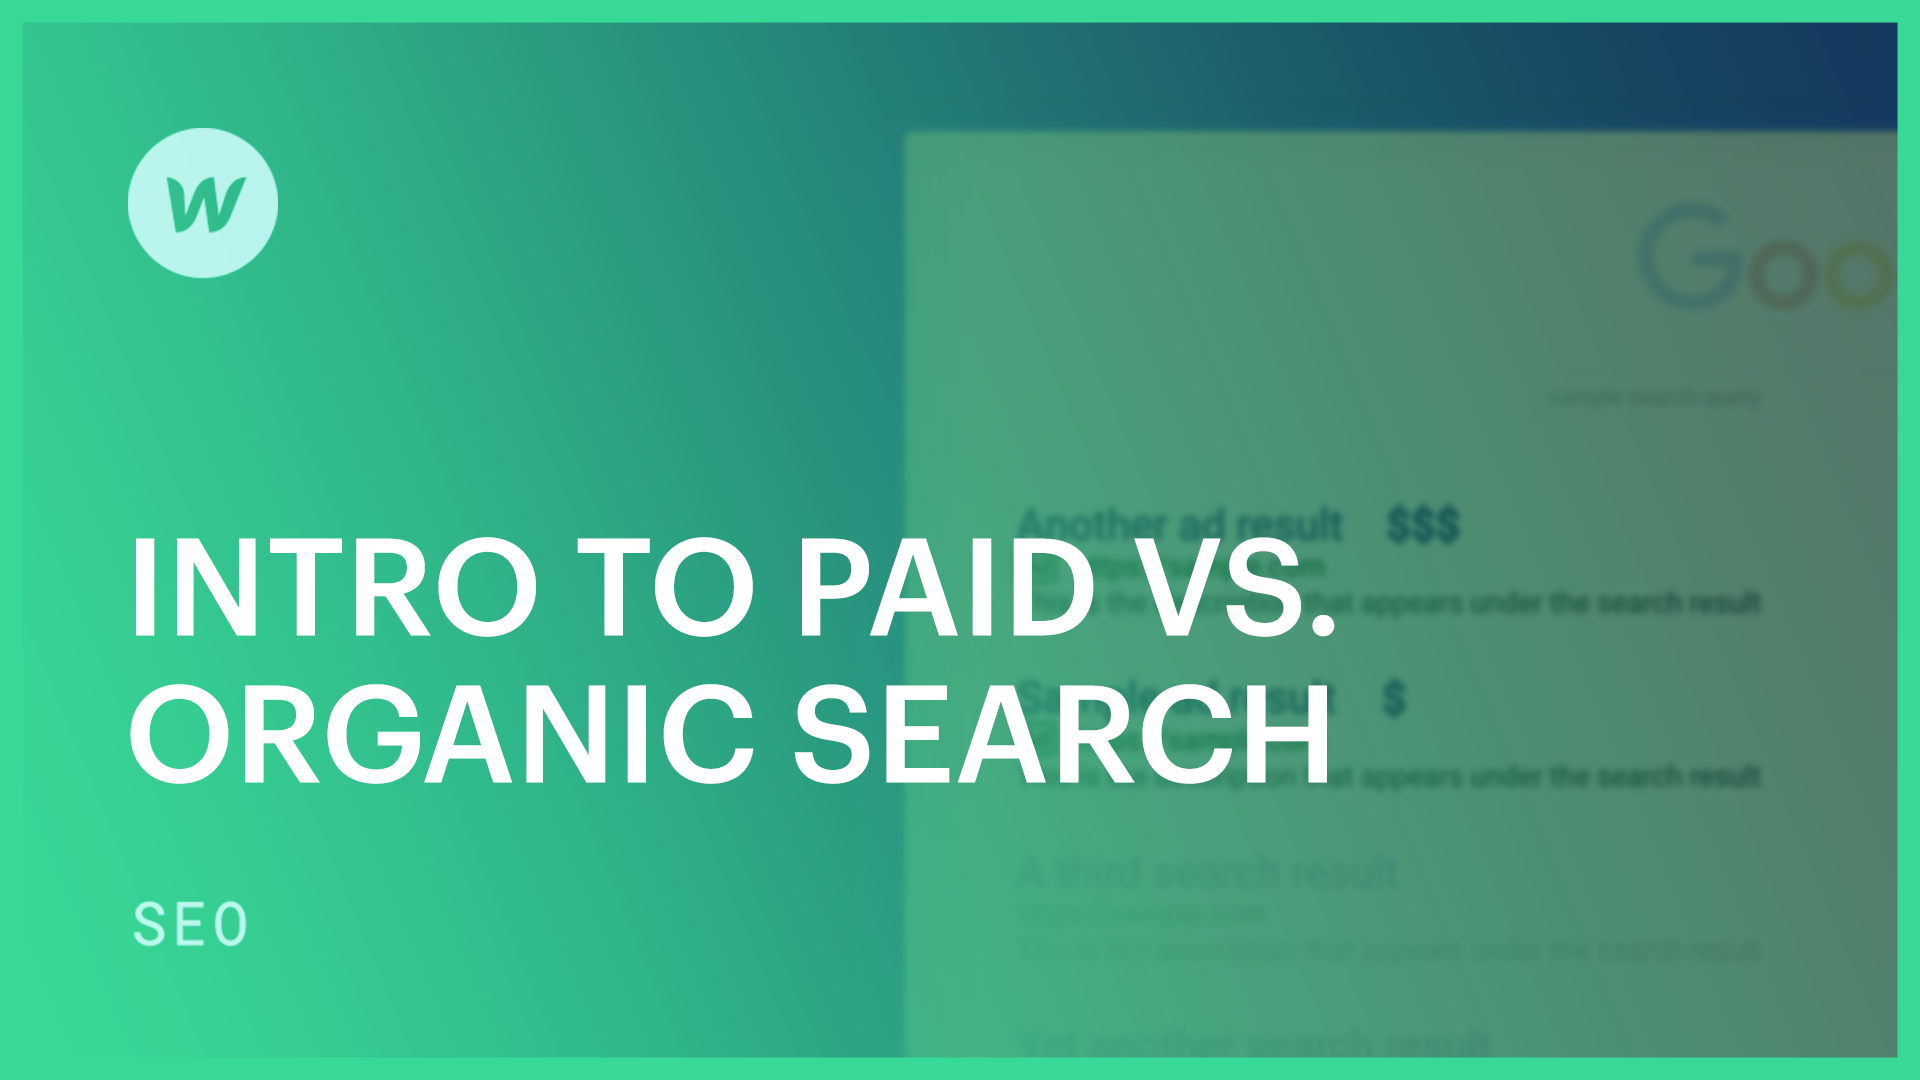 Intro to Paid vs. Organic Search